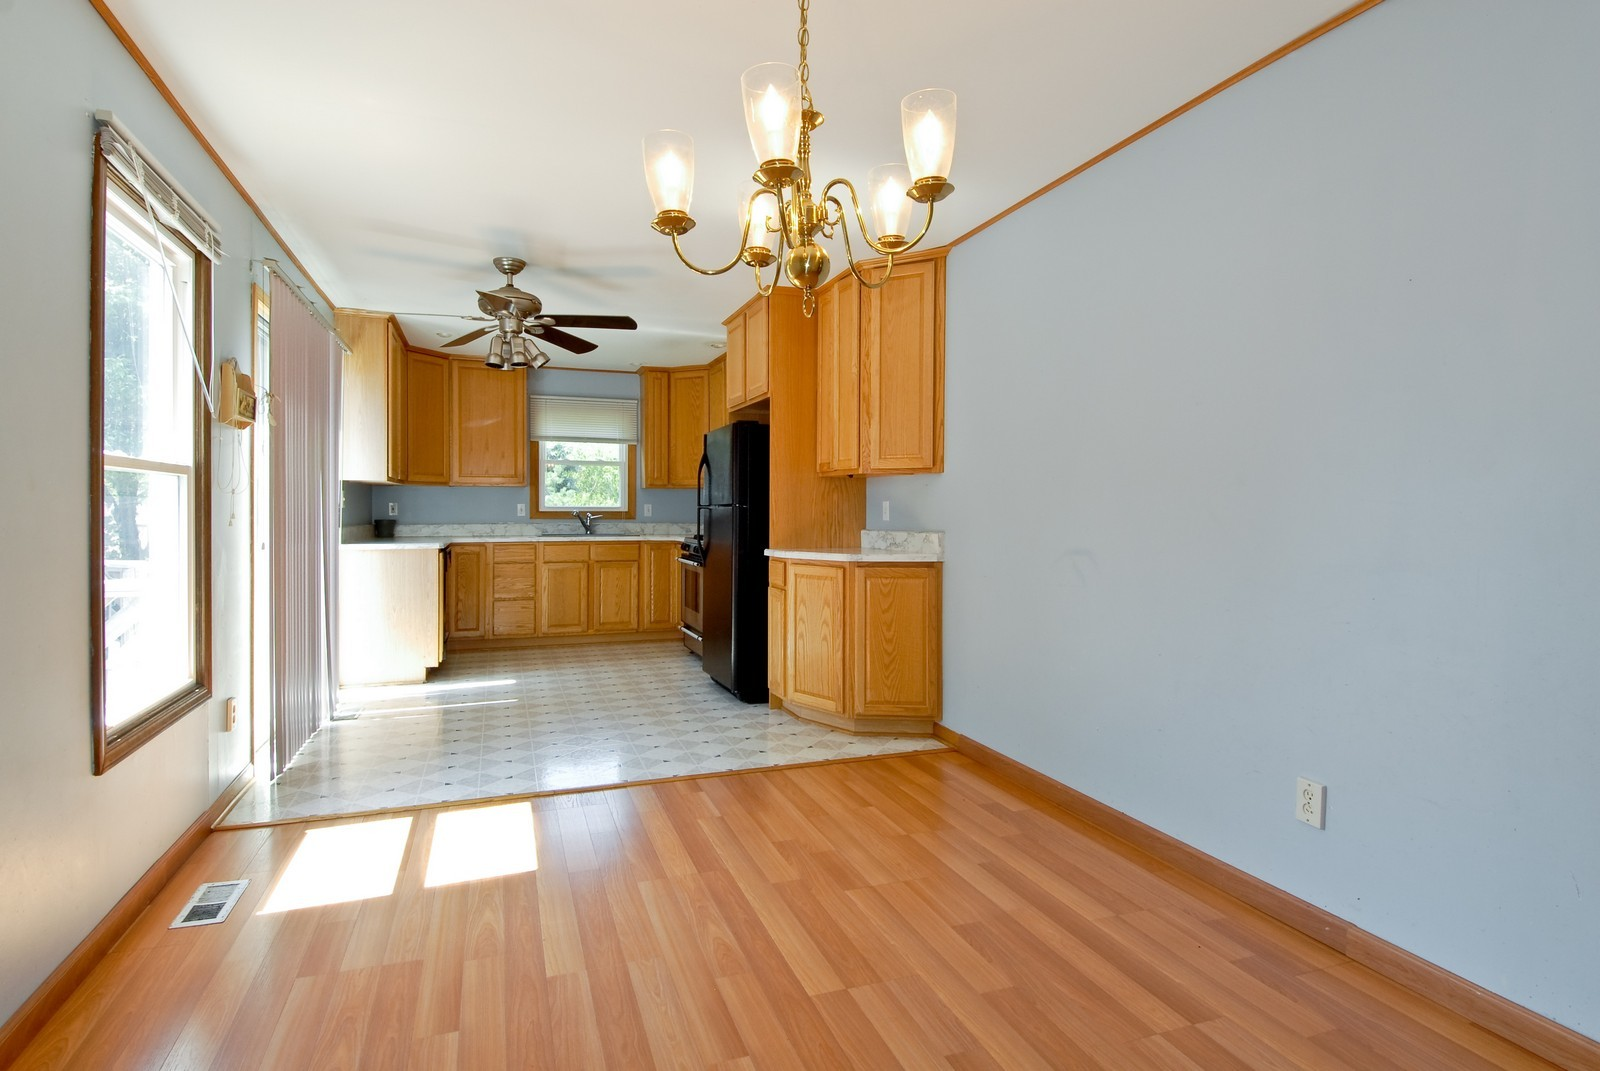 Real Estate Photography - 1563 Banbury Ave, St Charles, IL, 60174 - Kitchen / Breakfast Room